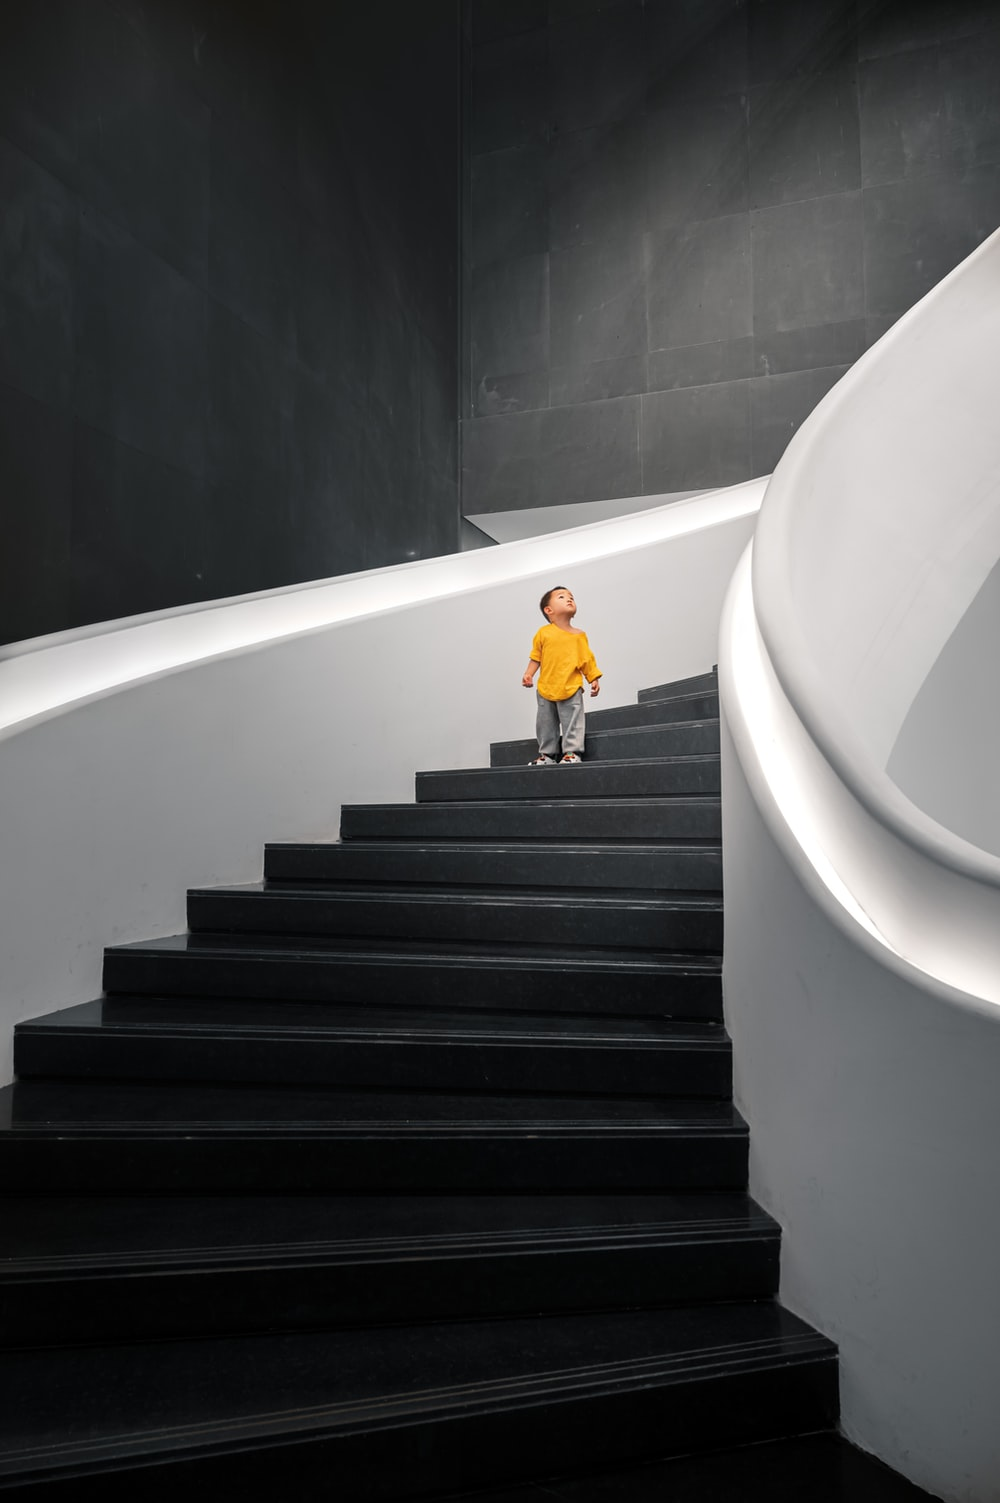 woman in yellow dress walking down the stairs